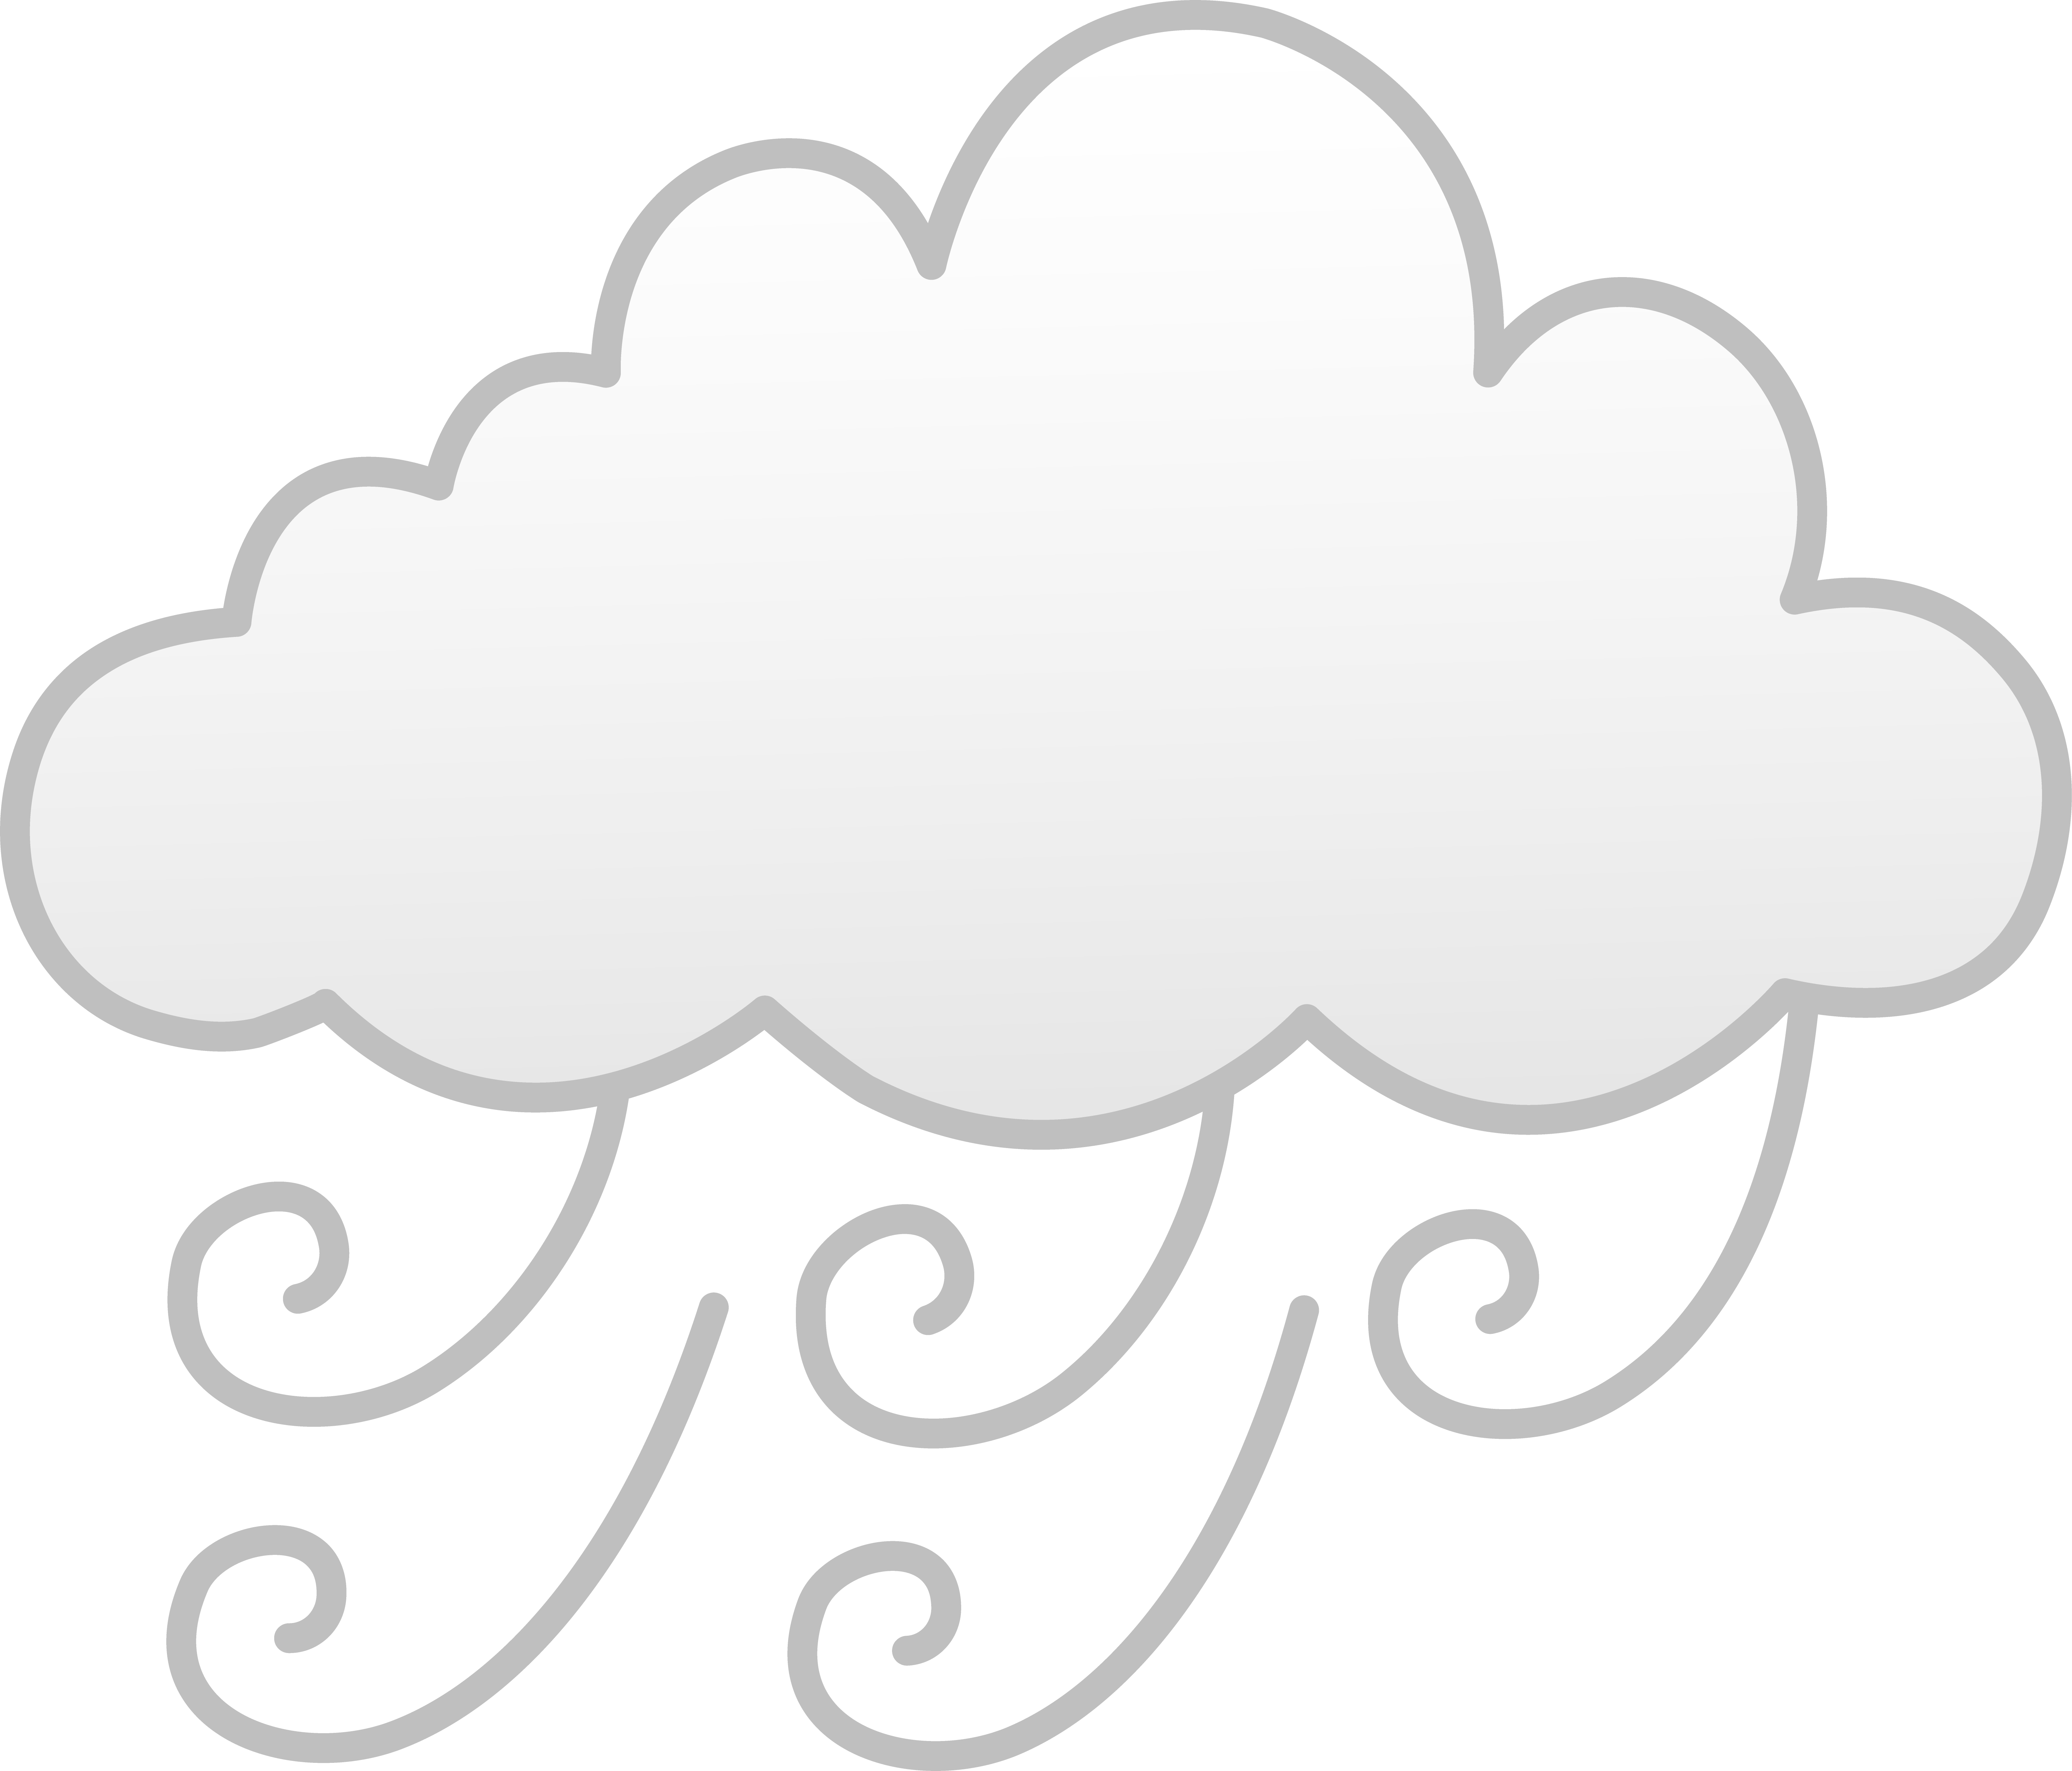 Hurricane clipart windy storm. Foggy weather